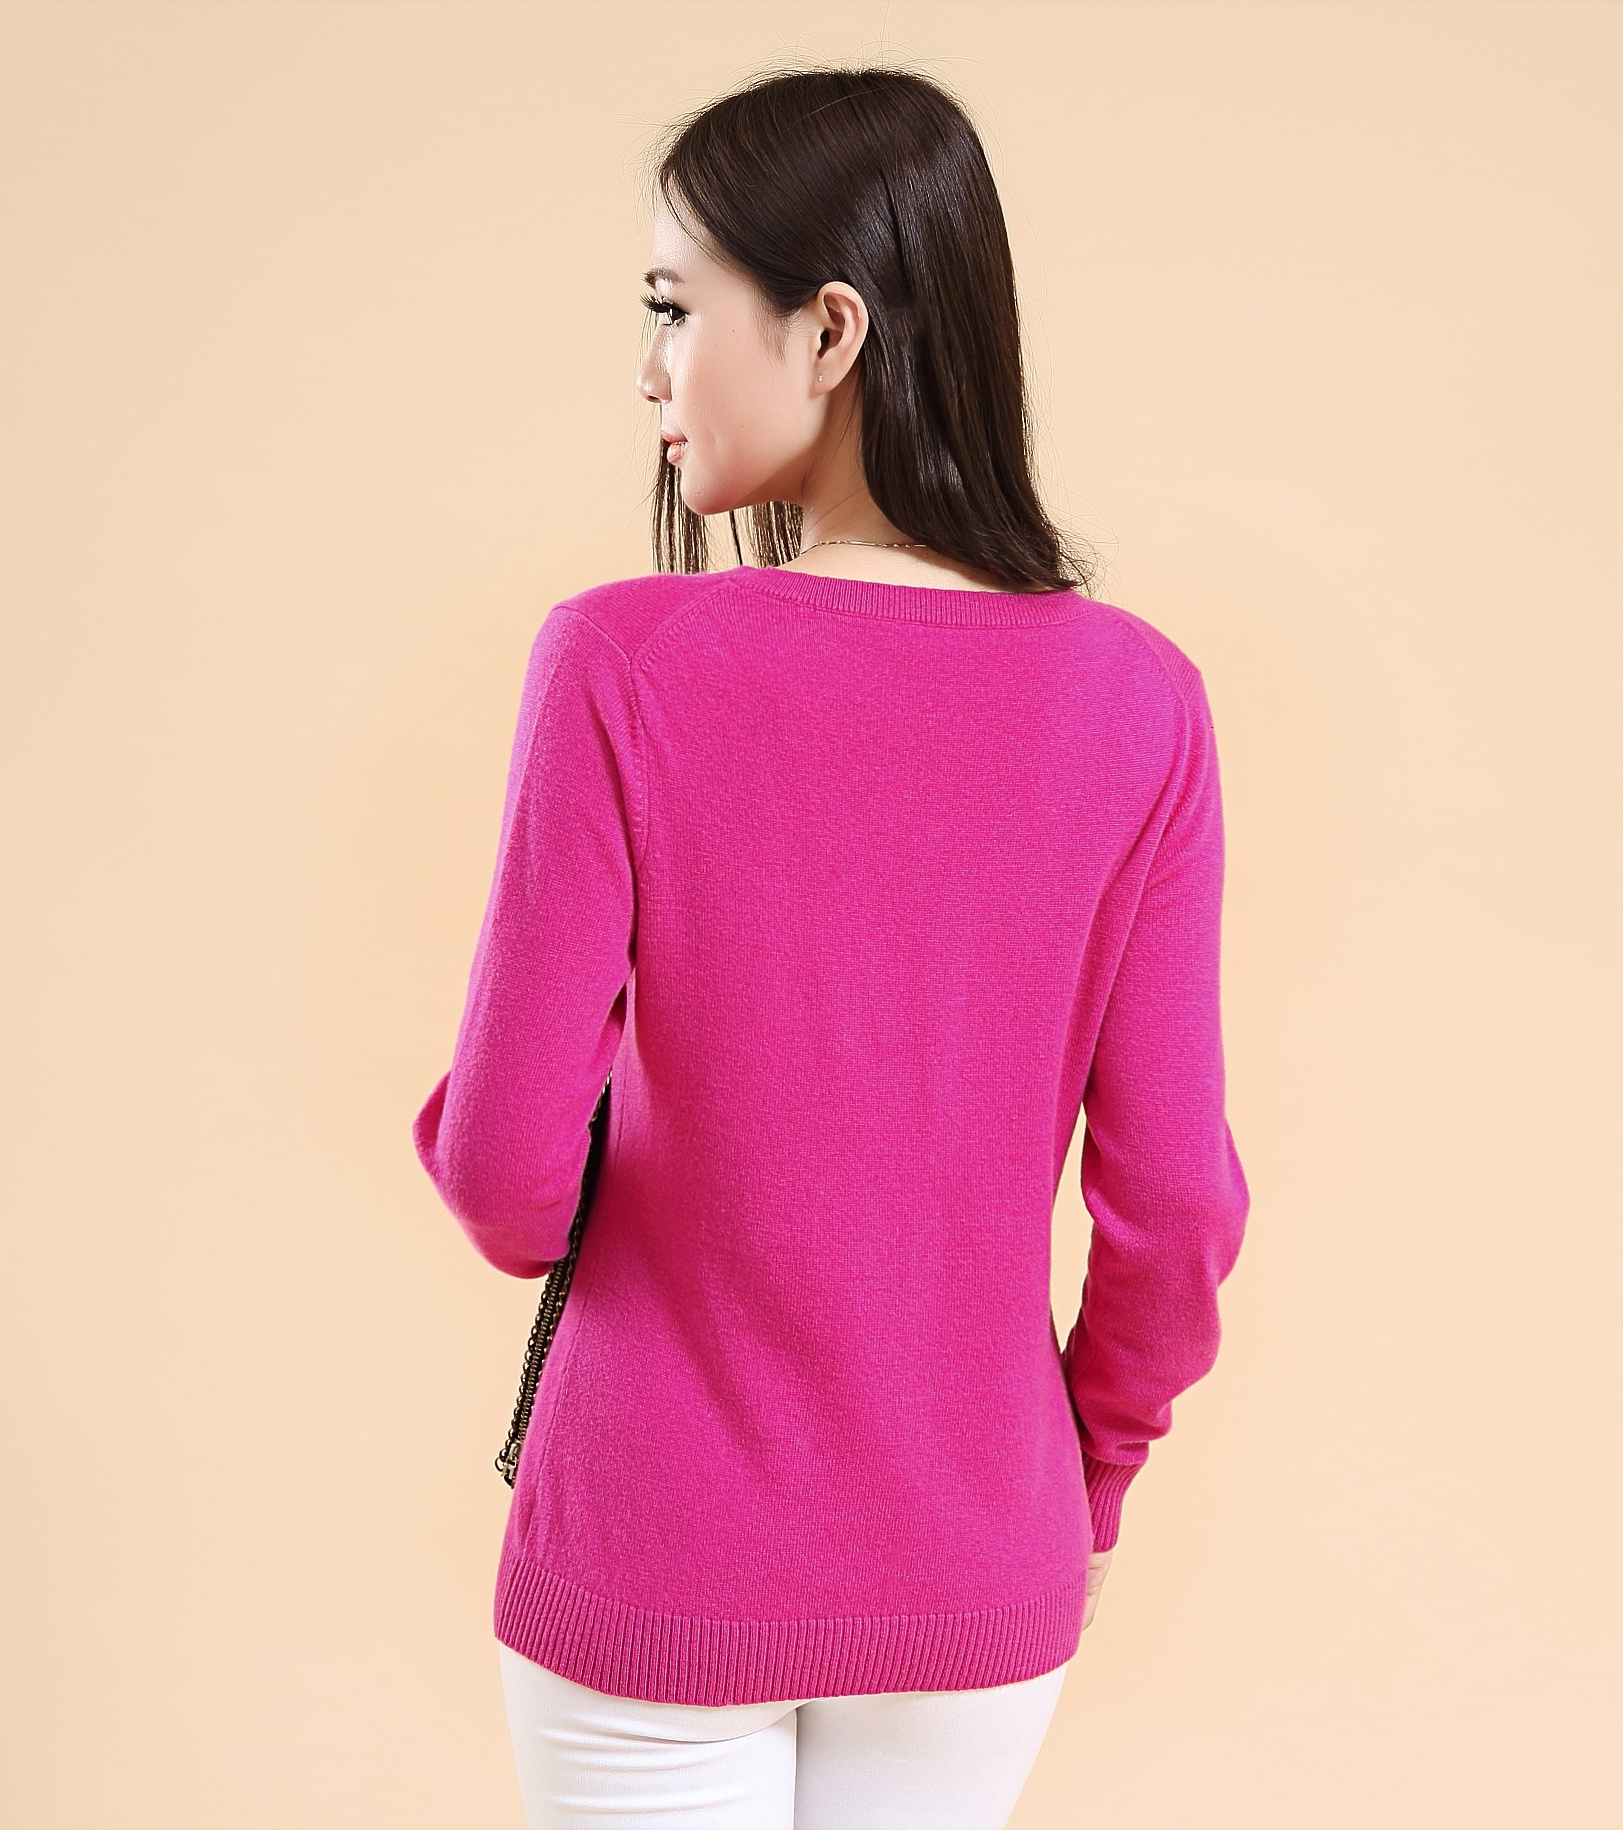 V neck pure cashmere pullover sweater